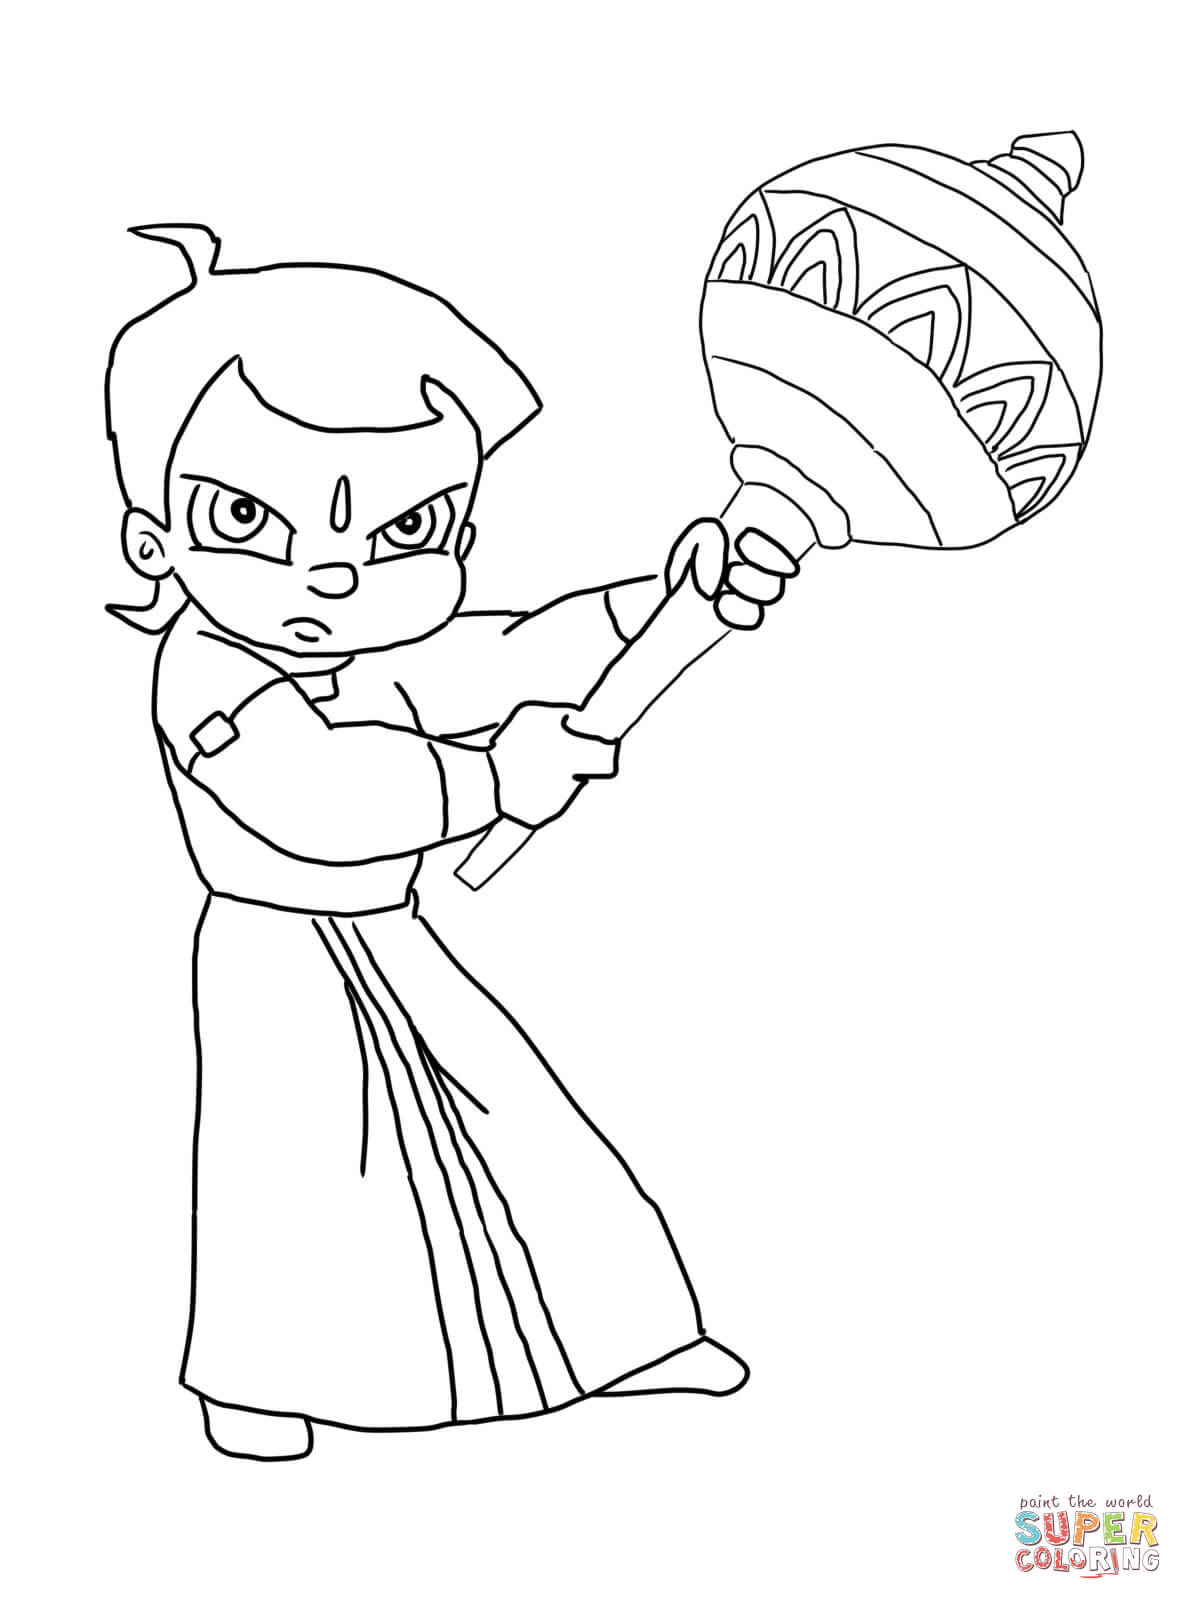 Free Chota Bheem Images Download Free Clip Art Free Clip Art On Clipart Library